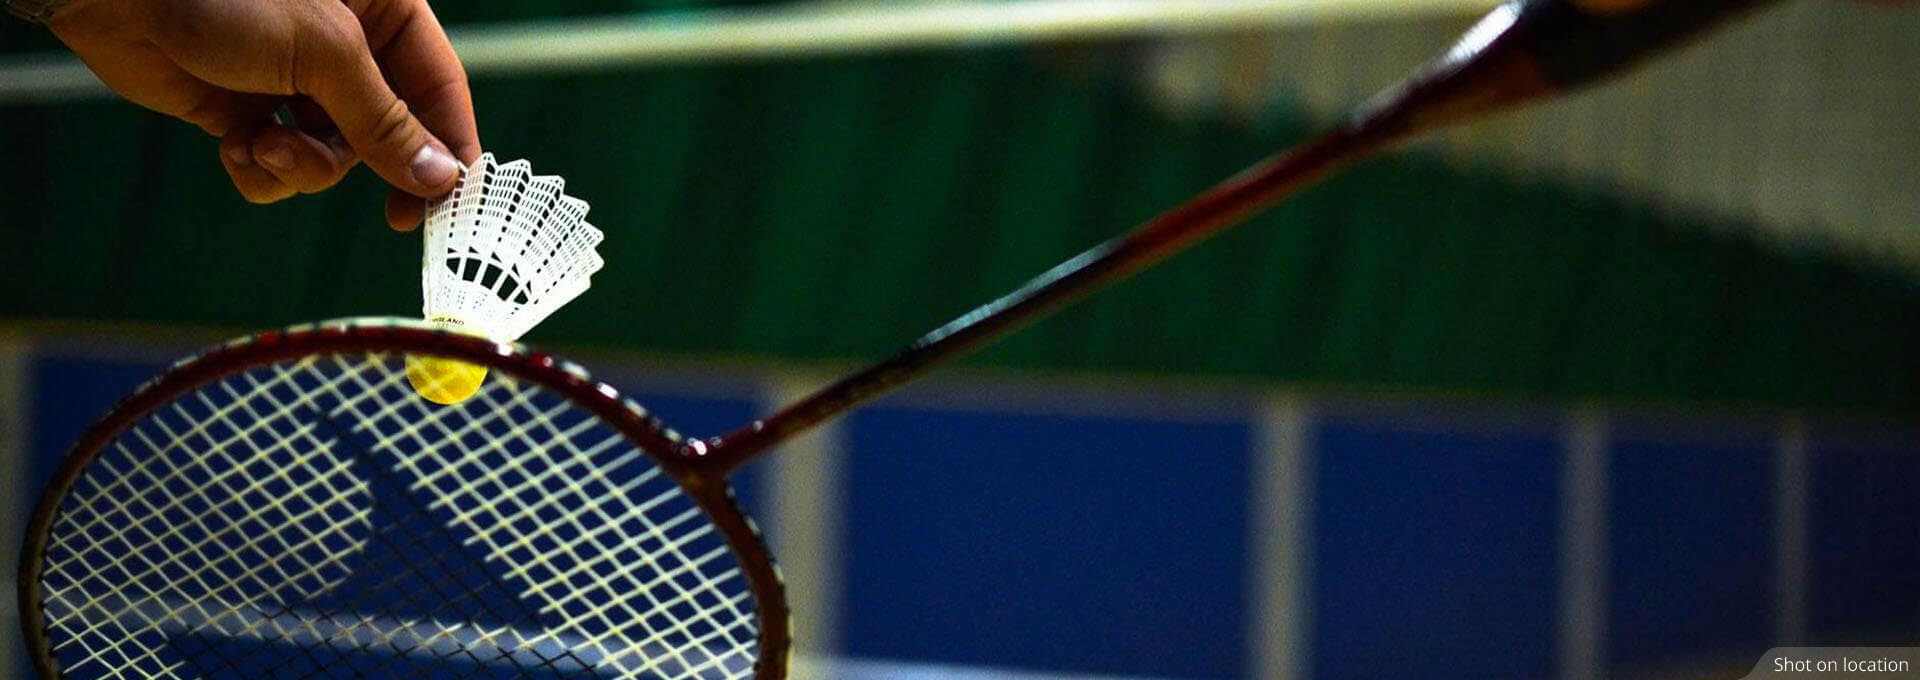 Badminton Court near Cottages by House of Hiranandani in Devanahalli, Bengaluru